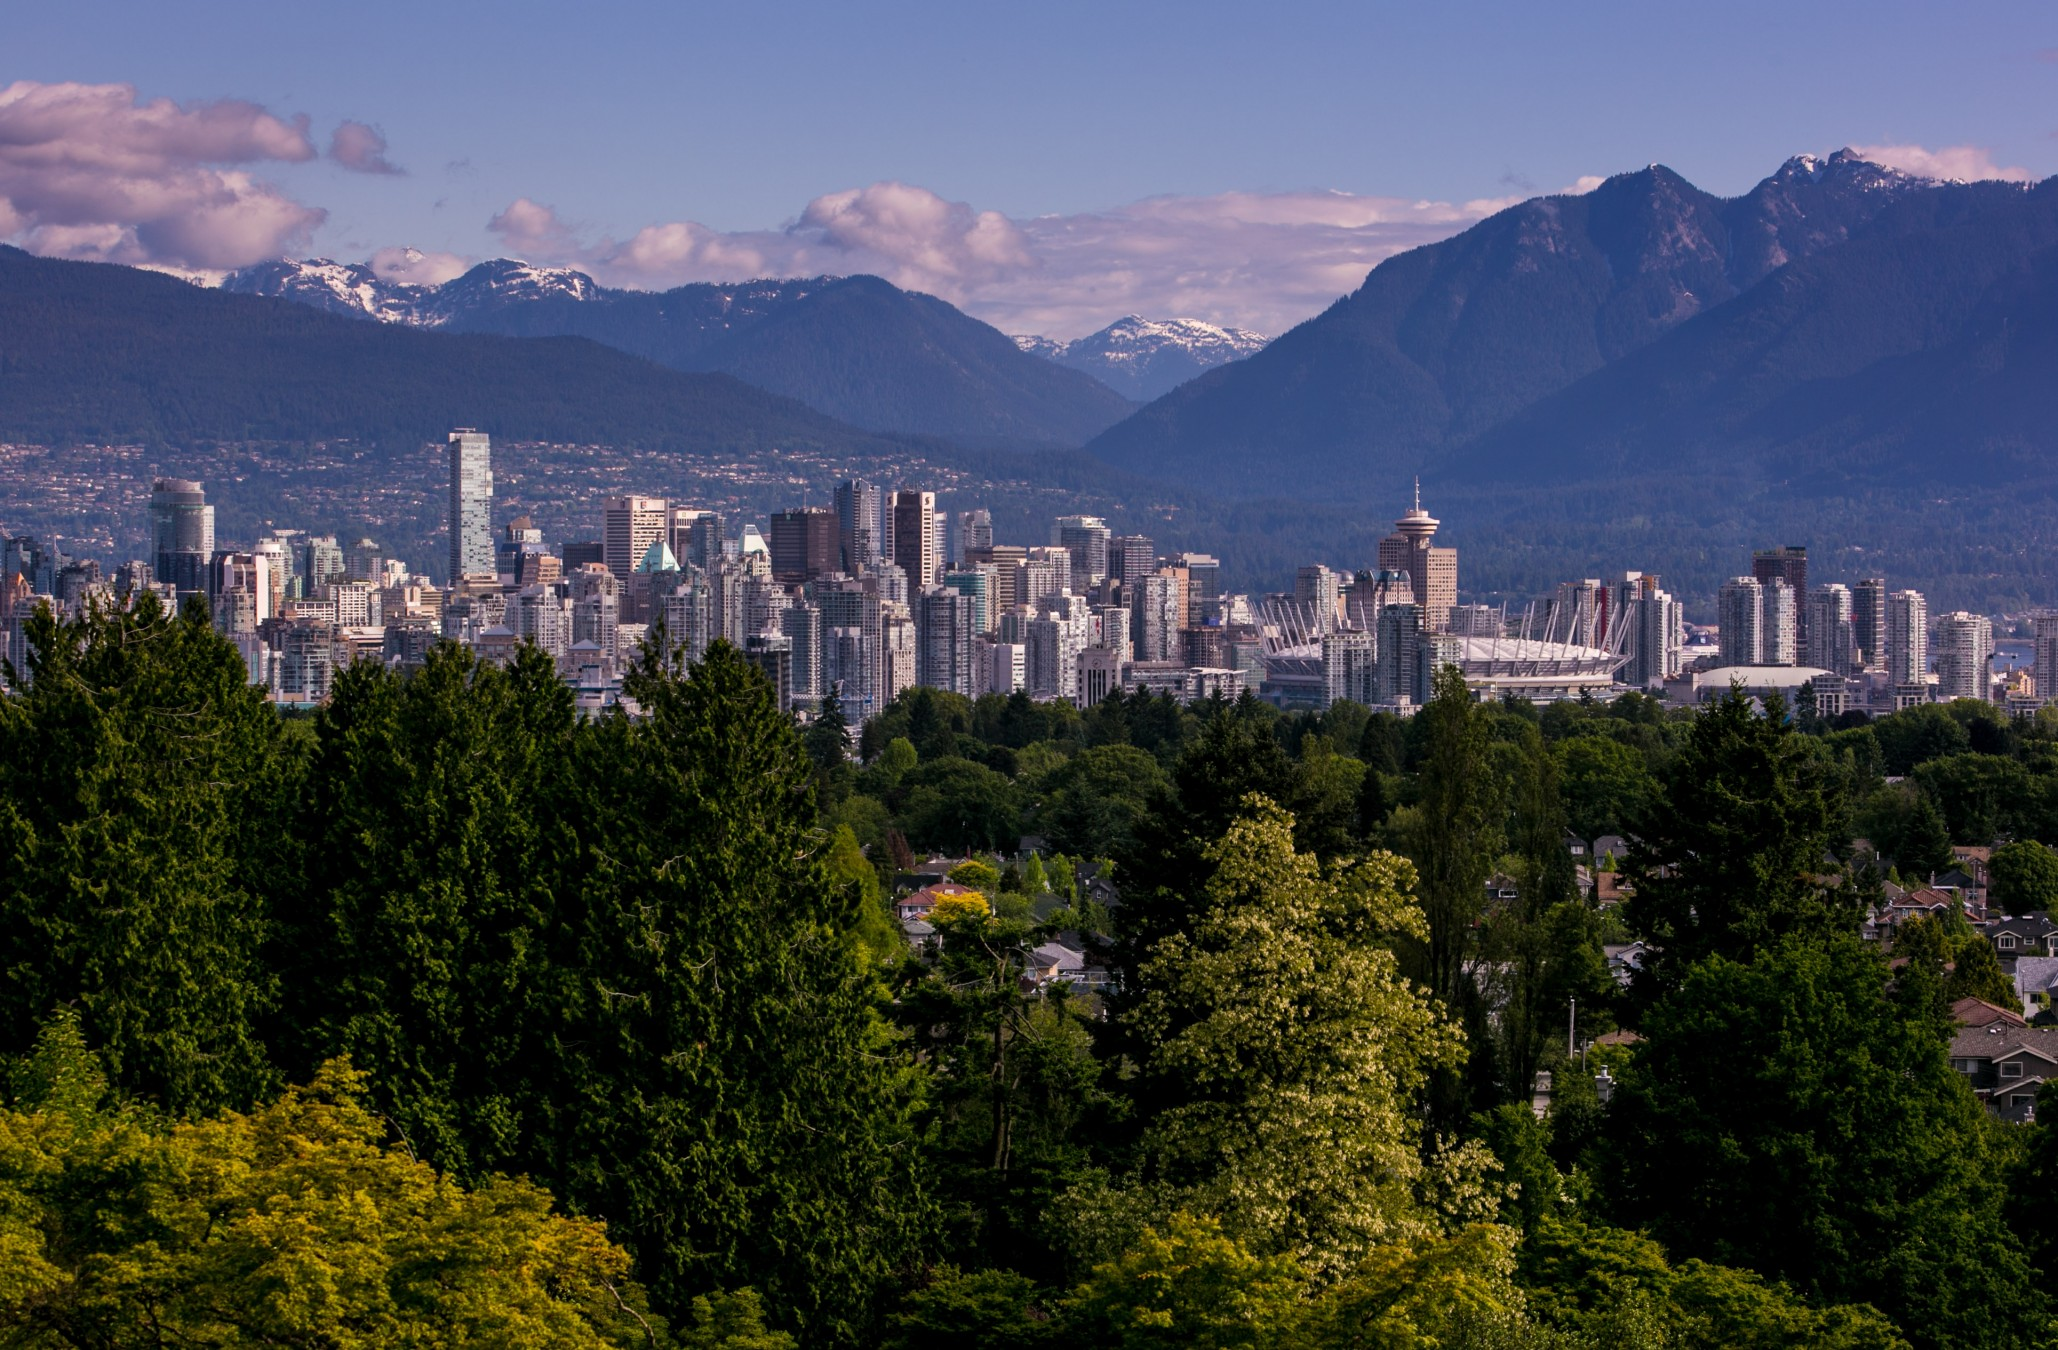 VANCOUVER, CANADA - JUNE 3: The downtown skyline is viewed from Queen Elizabeth Park on June 3, 2013 in Vancouver, British Columbia, Canada. Vancouver is a seaport city with close trading ties to Asia and is the most populous city in Western Canada, with nearly 2.3 million residents in the metropolitan area. (Photo by George Rose/Getty Images)